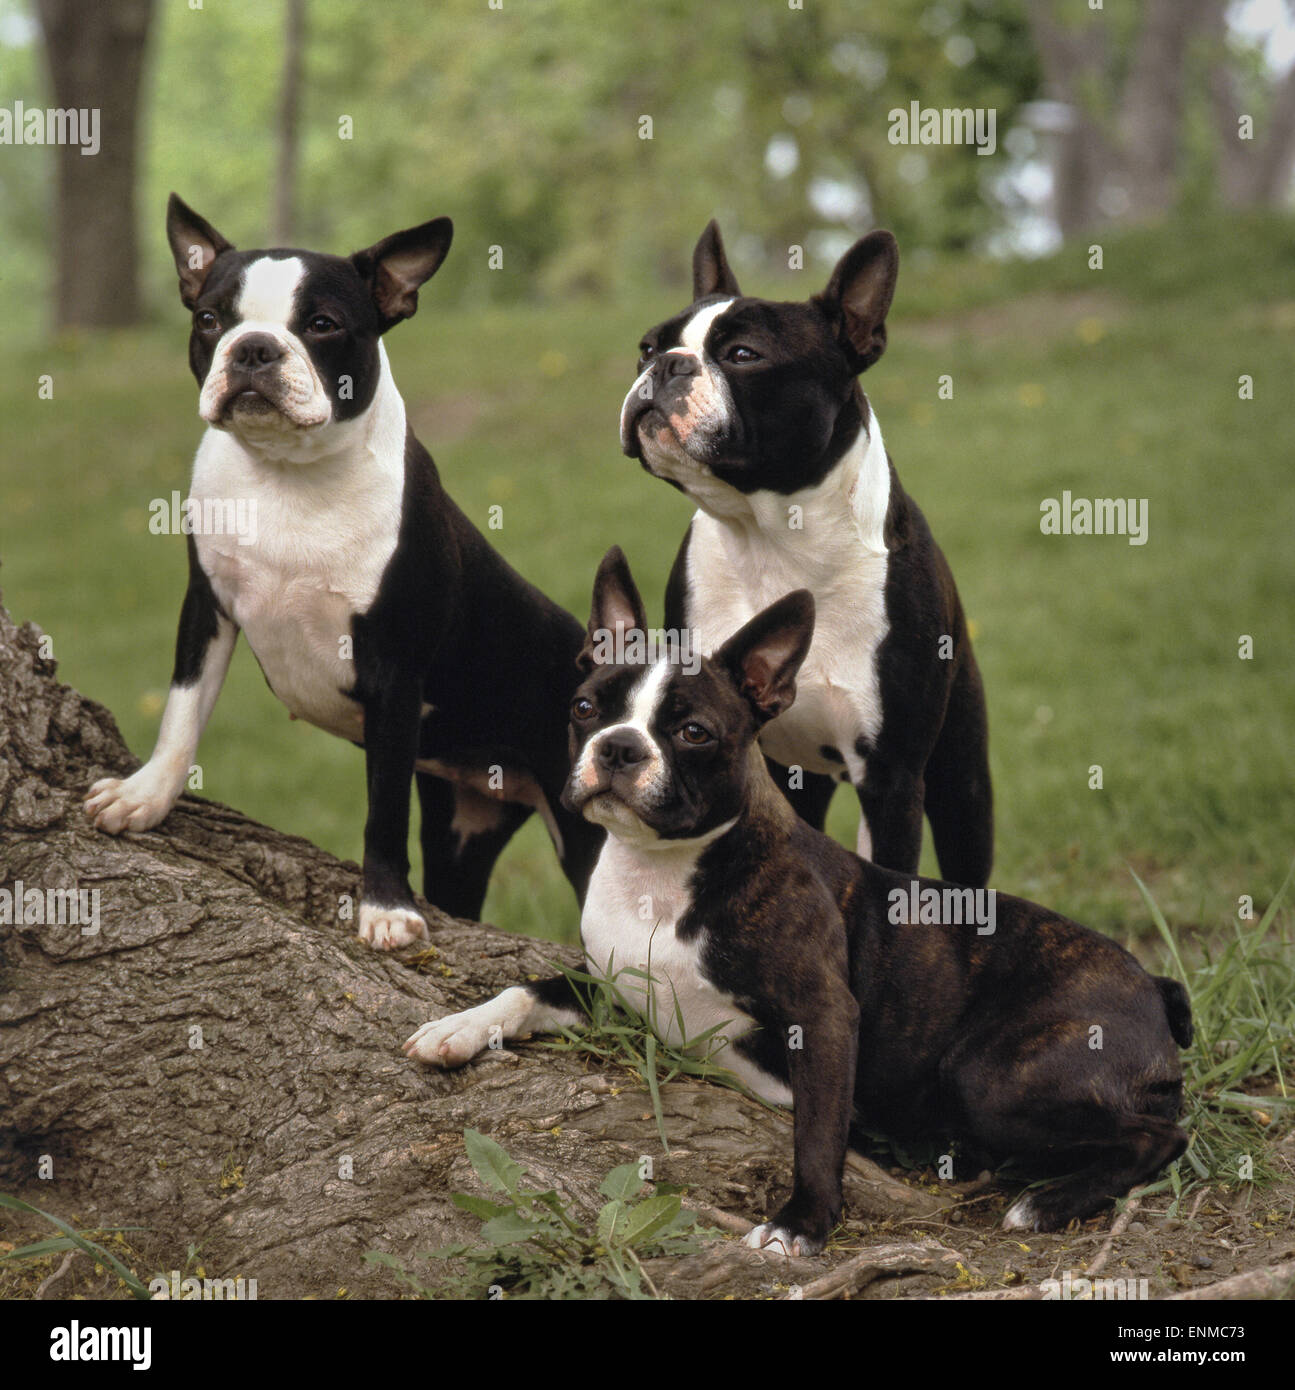 3 Boston terriers on a big tree root, one is lying the two others standing on the root, all of them have an attentive - Stock Image